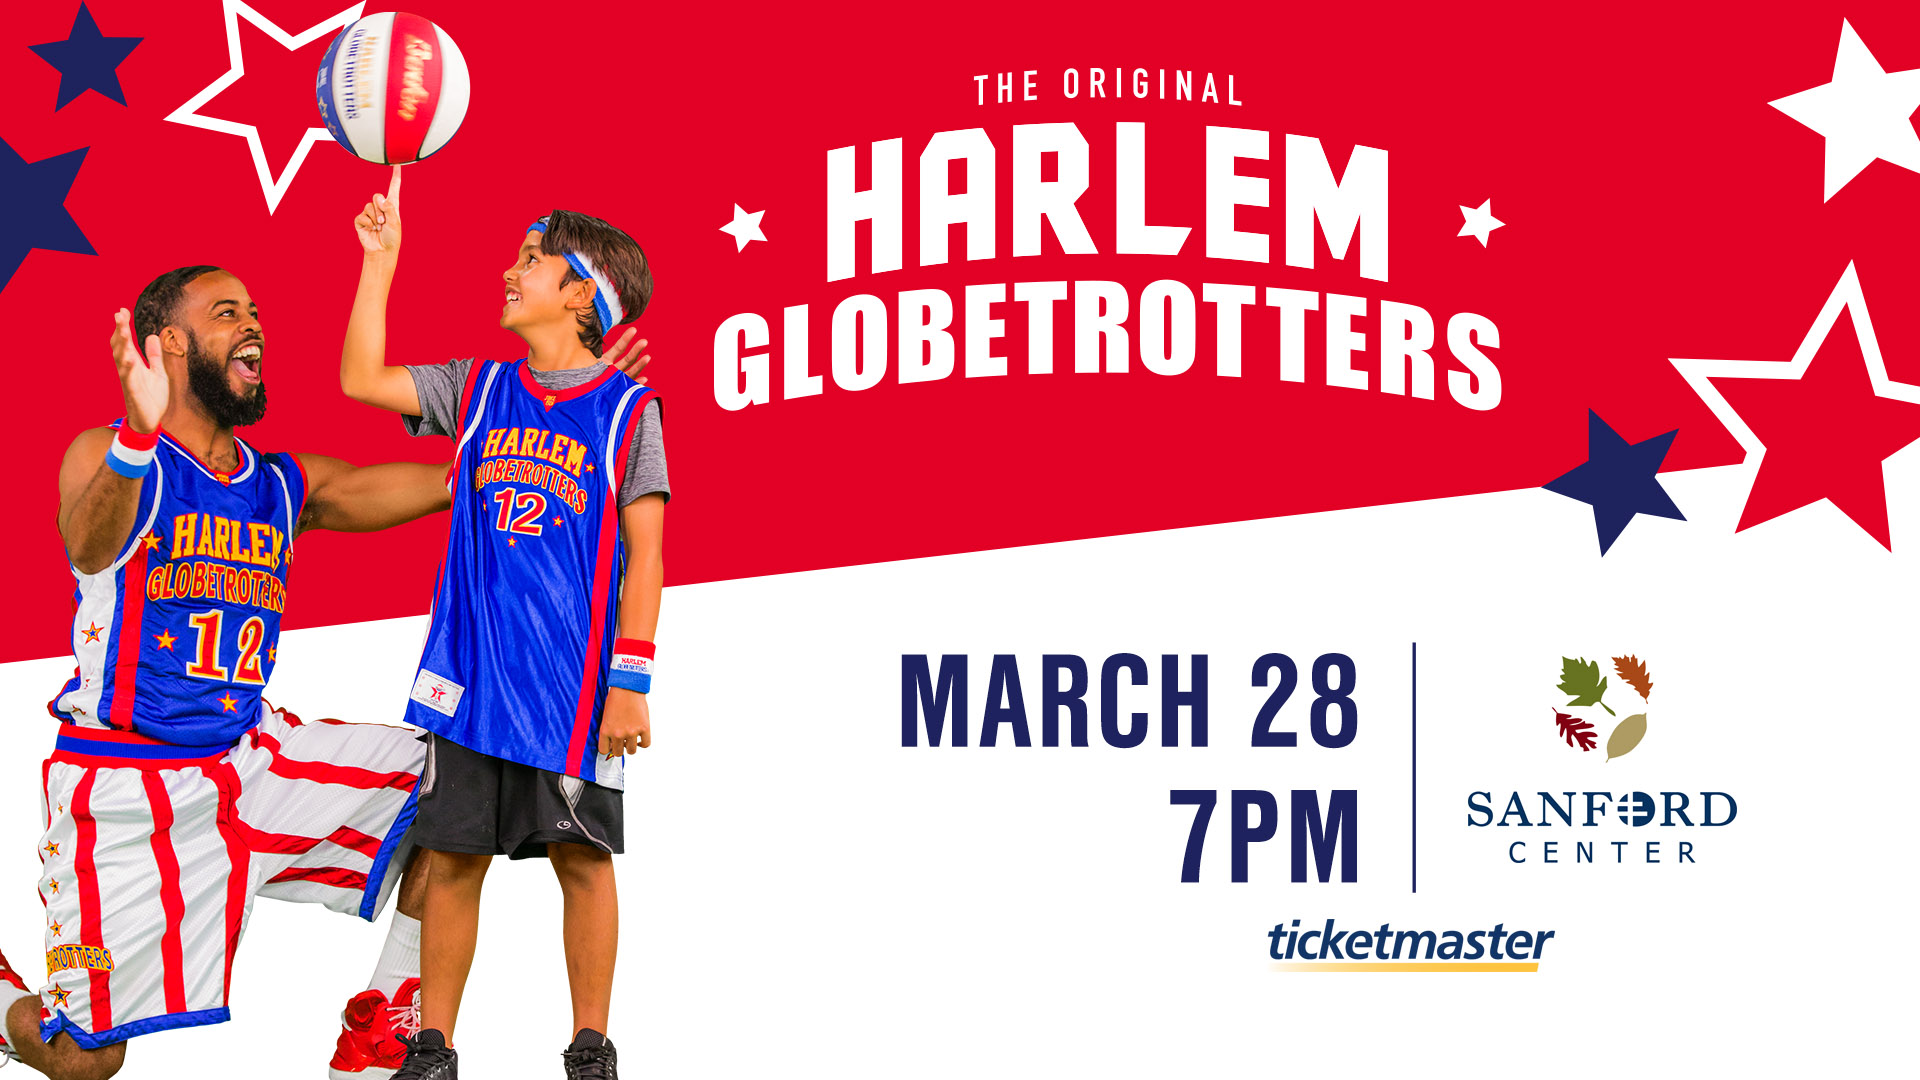 harlem globetrotters sanford center bemidji